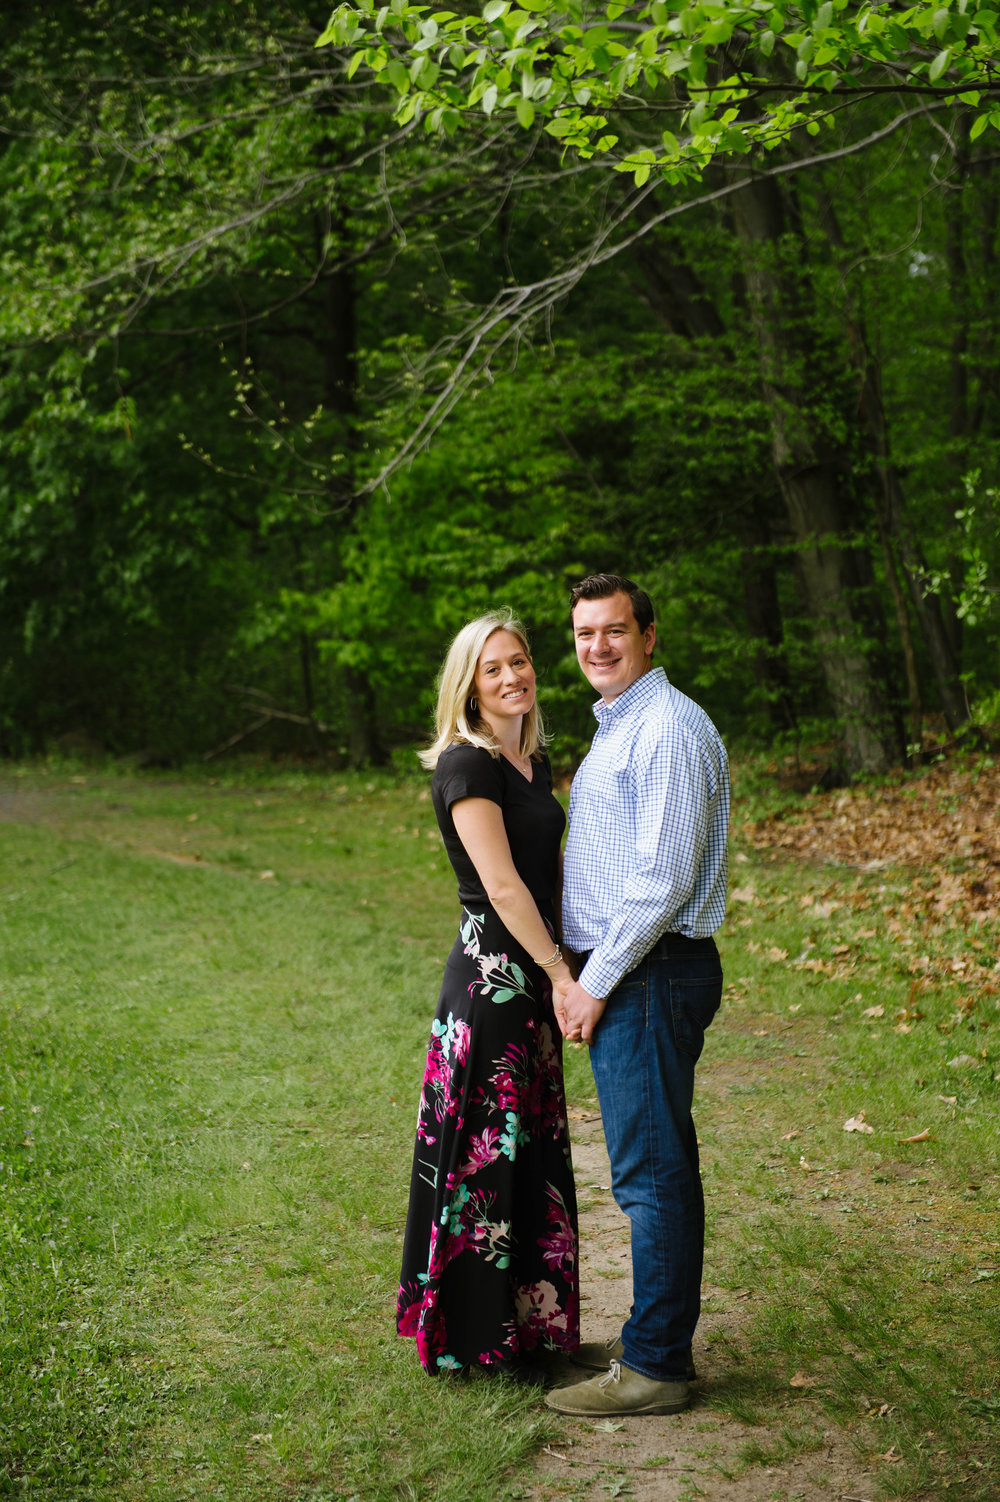 Rustic-Engagement-Session002.jpg